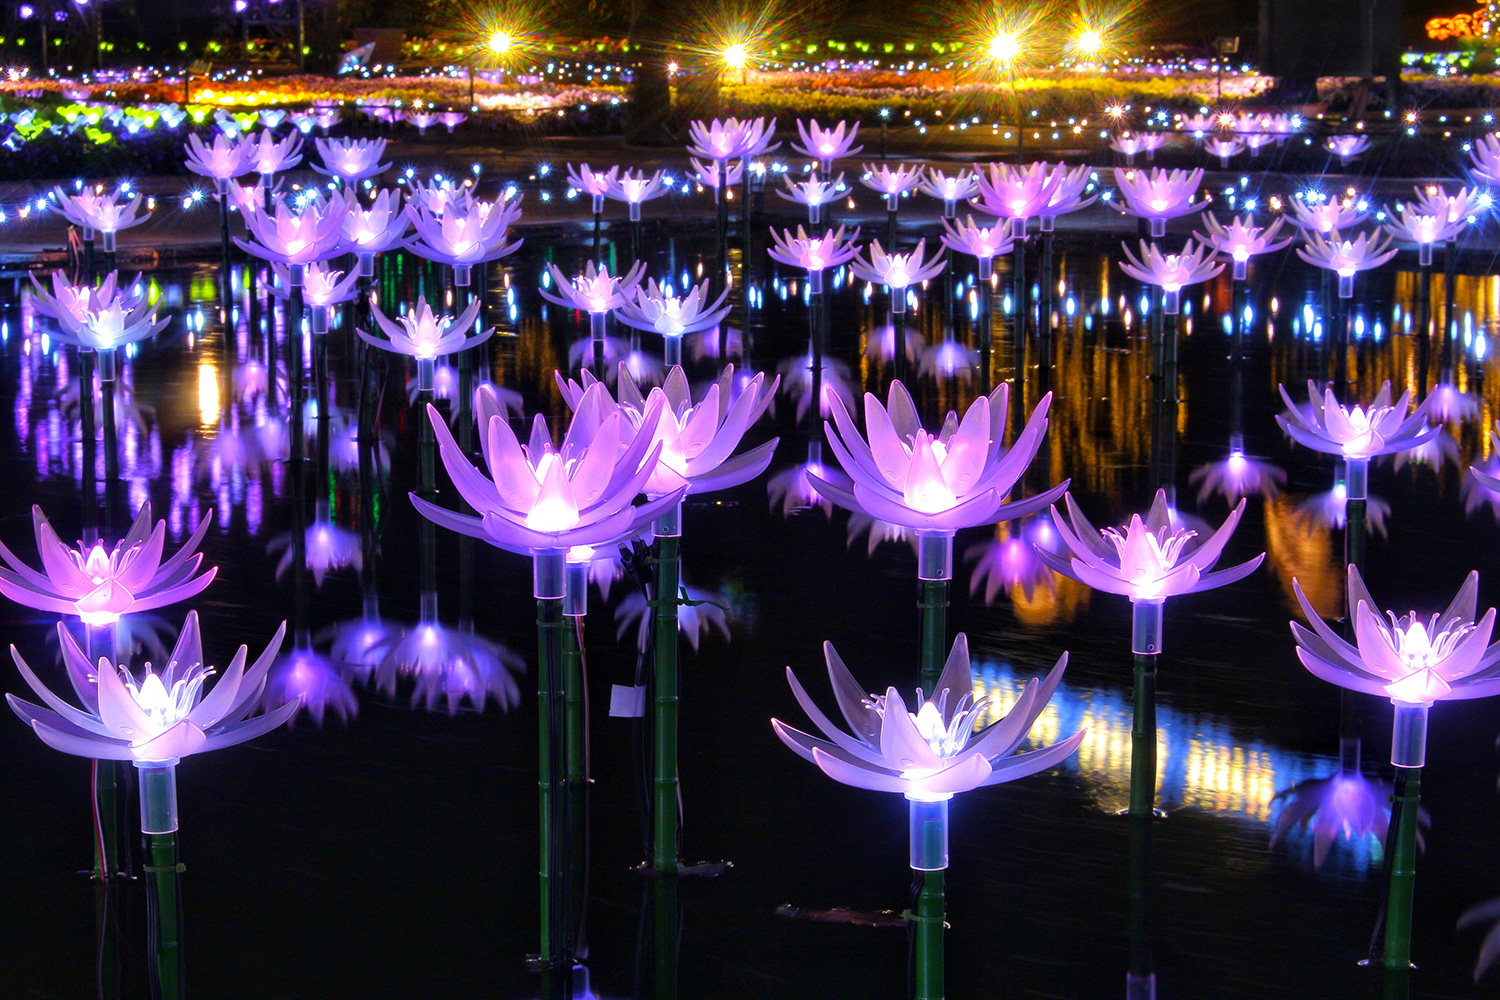 ashikaga park illuminations metropolis magazine japan